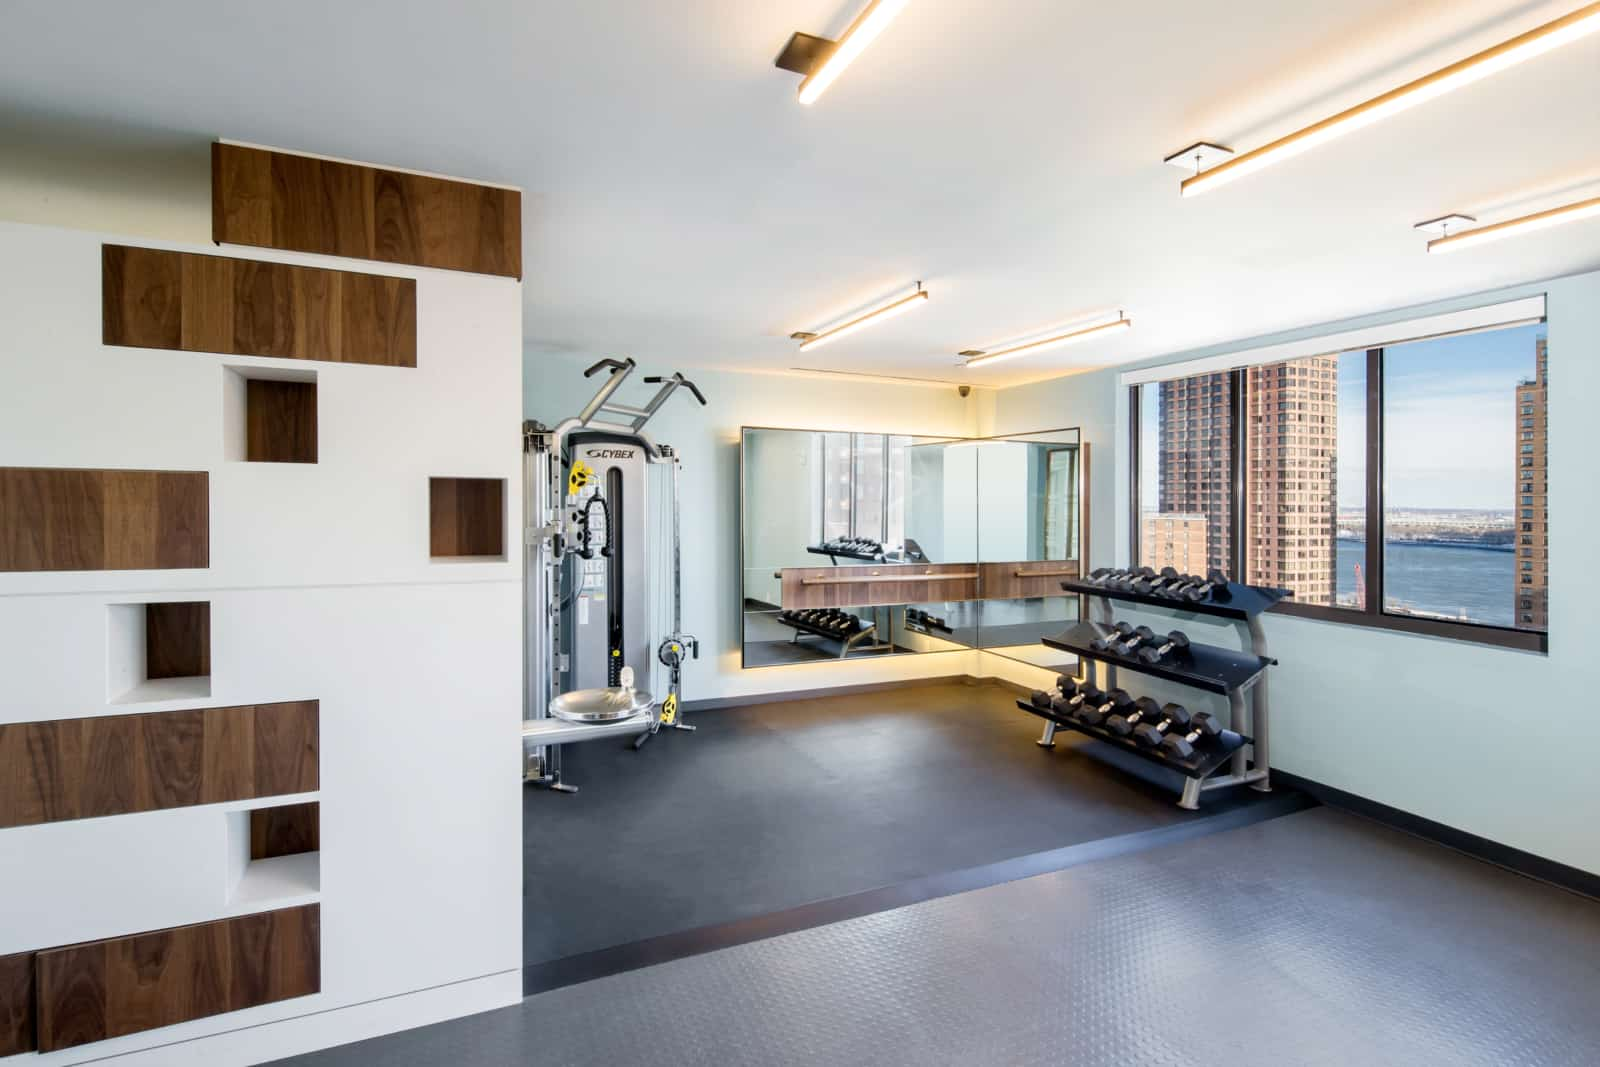 Interior of fitness center free weights area.